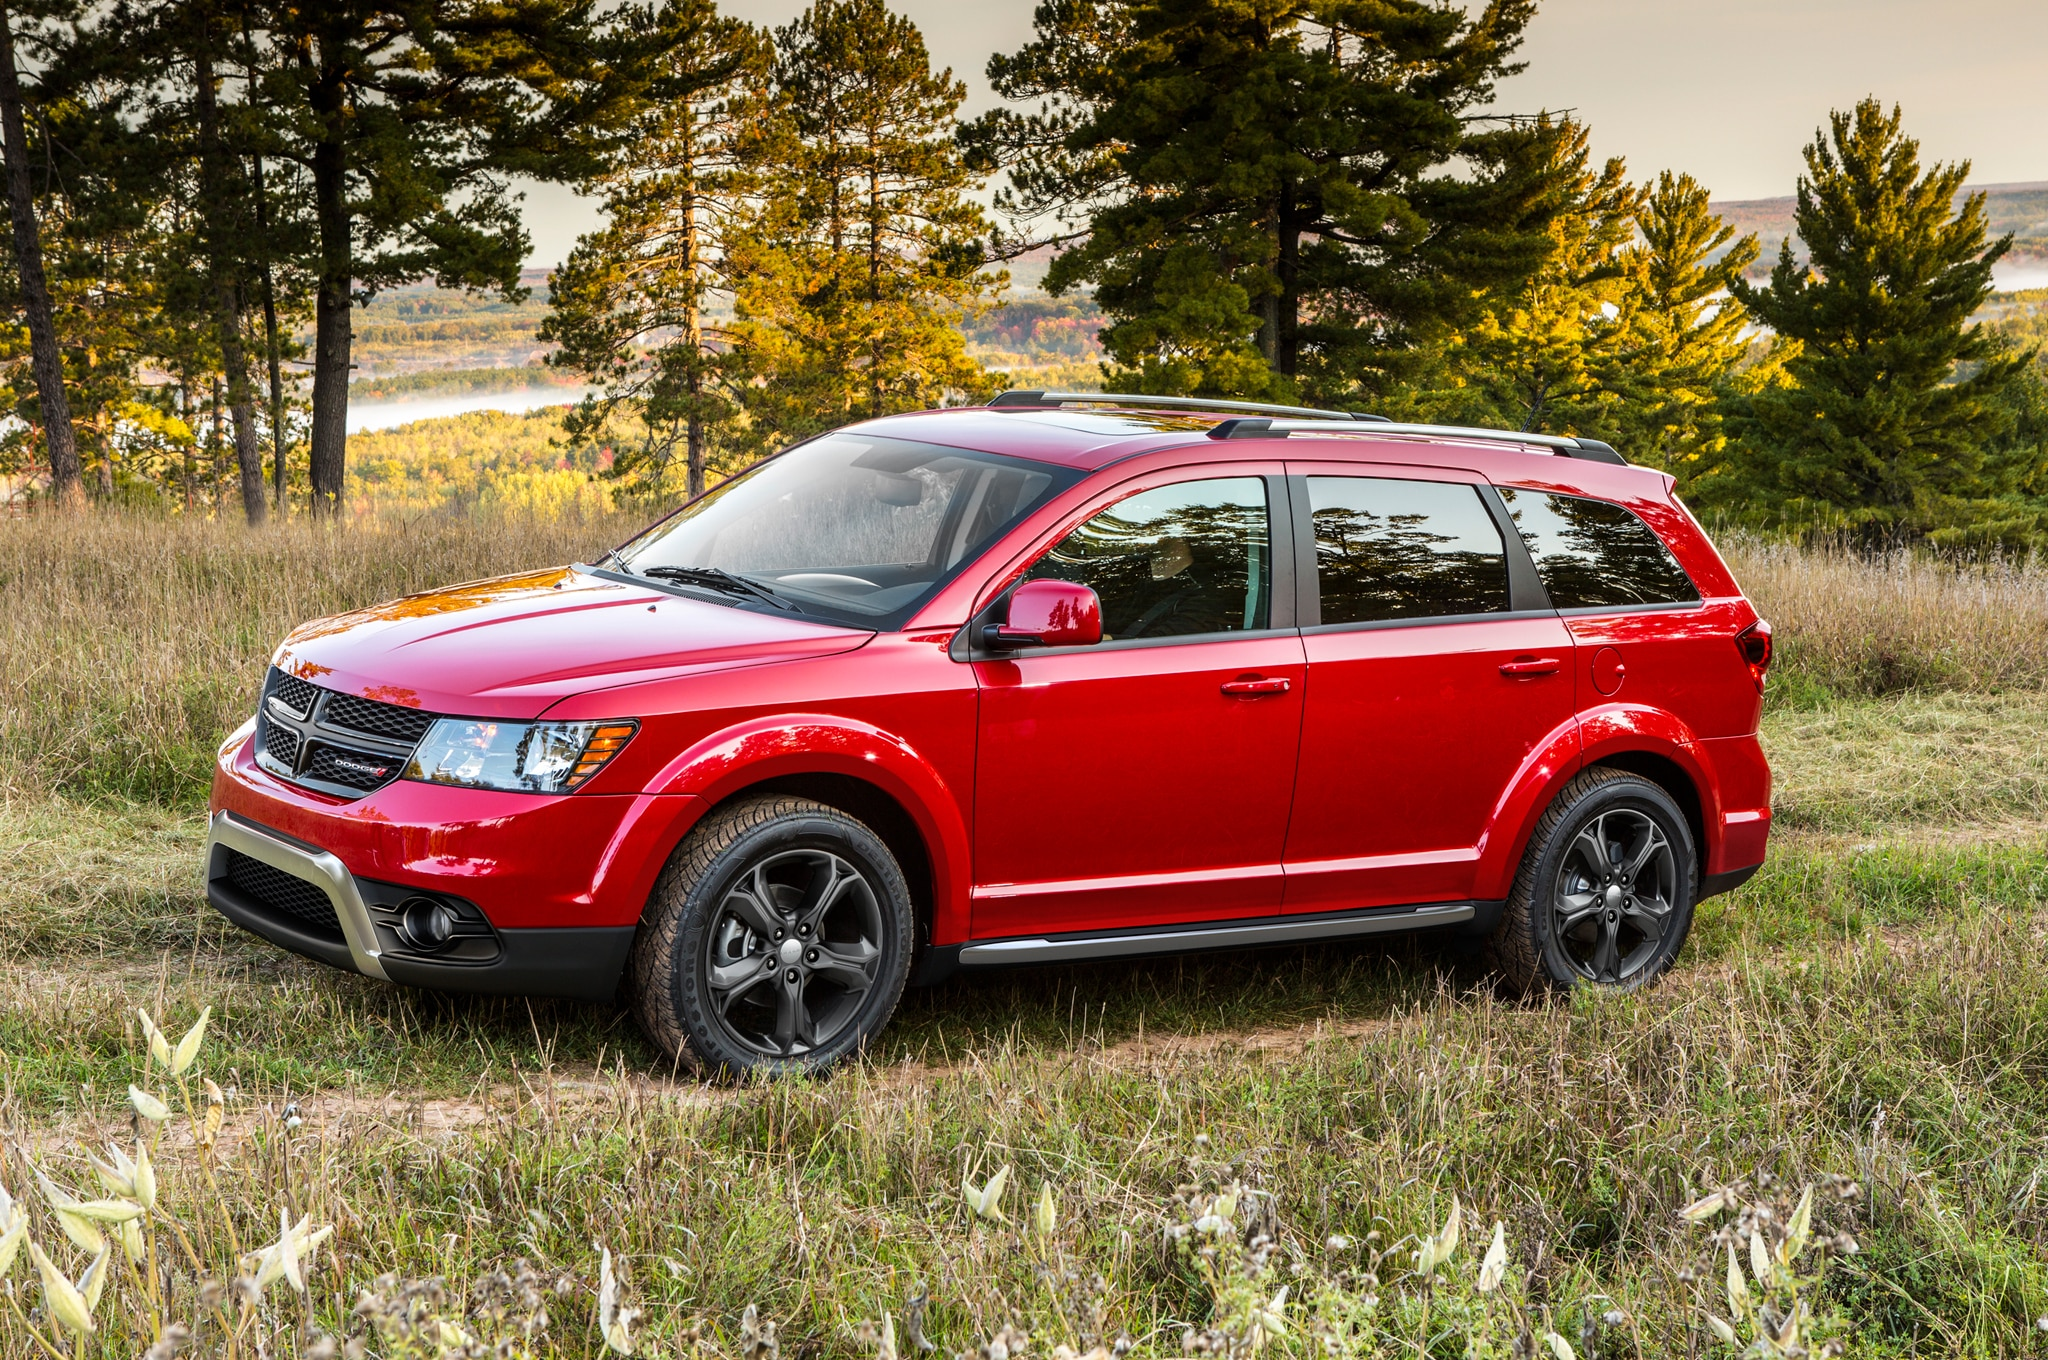 2014 dodge journey crossroad front three quarter 1 2014 dodge journey crossroad to debut at 2014 chicago auto show where is the fuse box in a 2014 dodge journey at alyssarenee.co